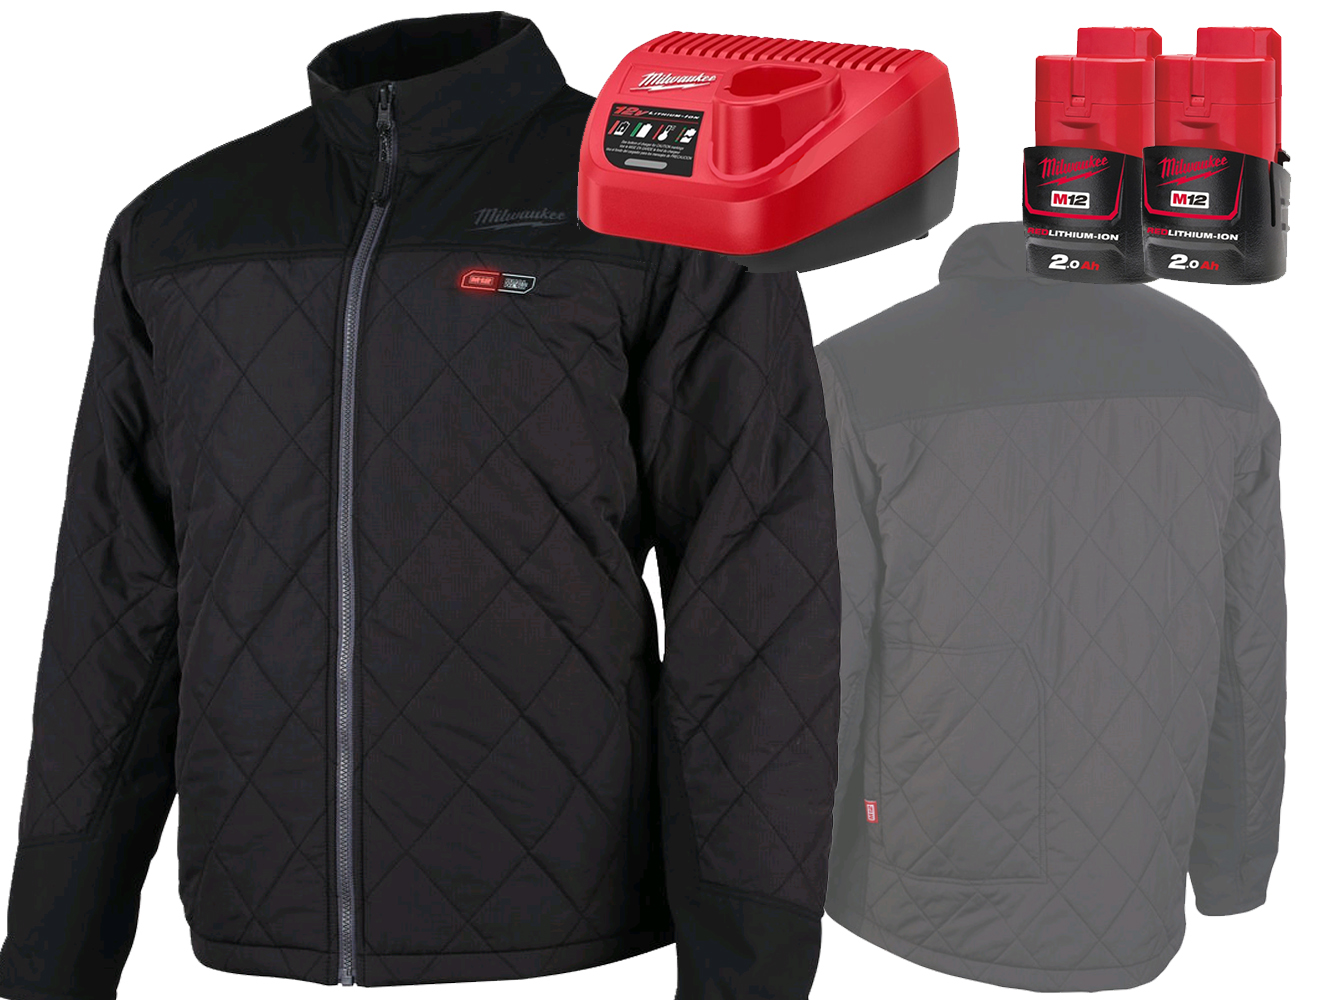 MILWAUKEE 12V BLACK HEATED PUFFER JACKET - GEN 1 - MEDIUM - 2.0AH PACK